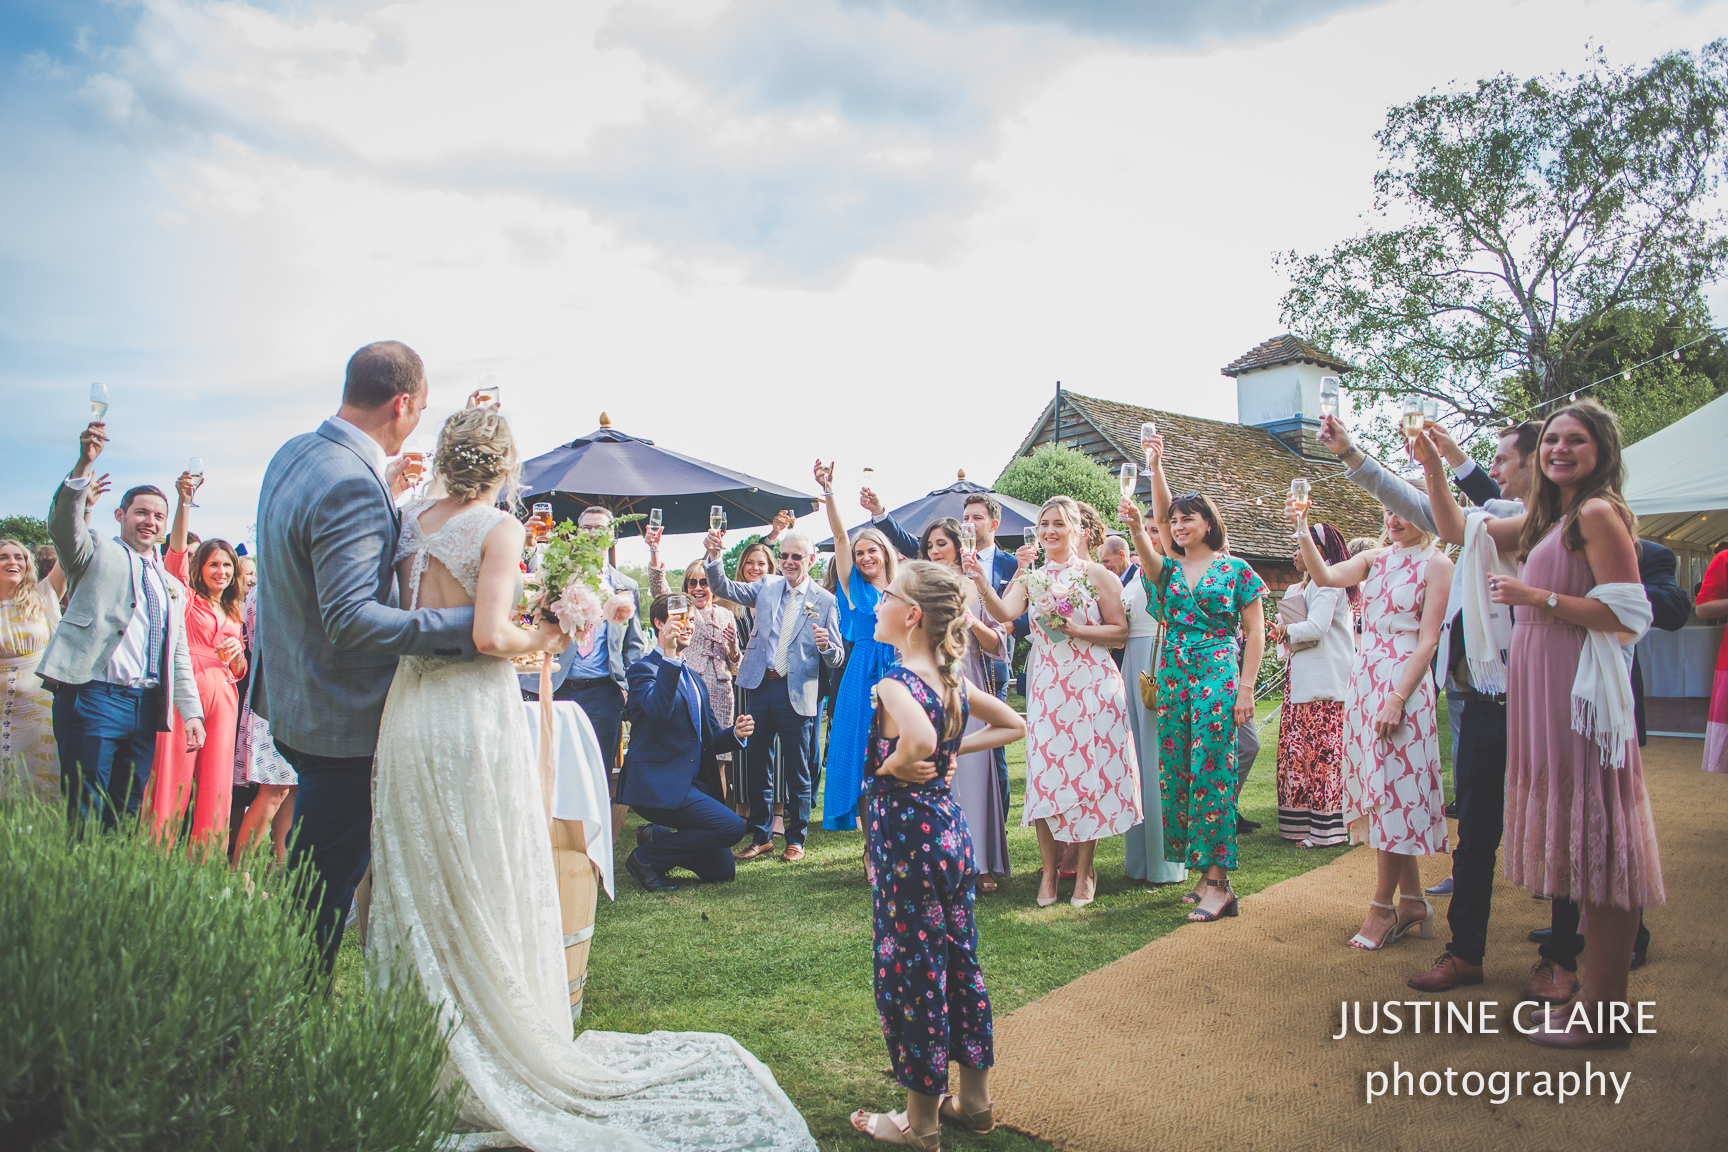 Noahs Ark wedding photographers Lurgashall Petersfield Marquee wedding photo Tents'n'Events Arundel tipi-2-10.jpg